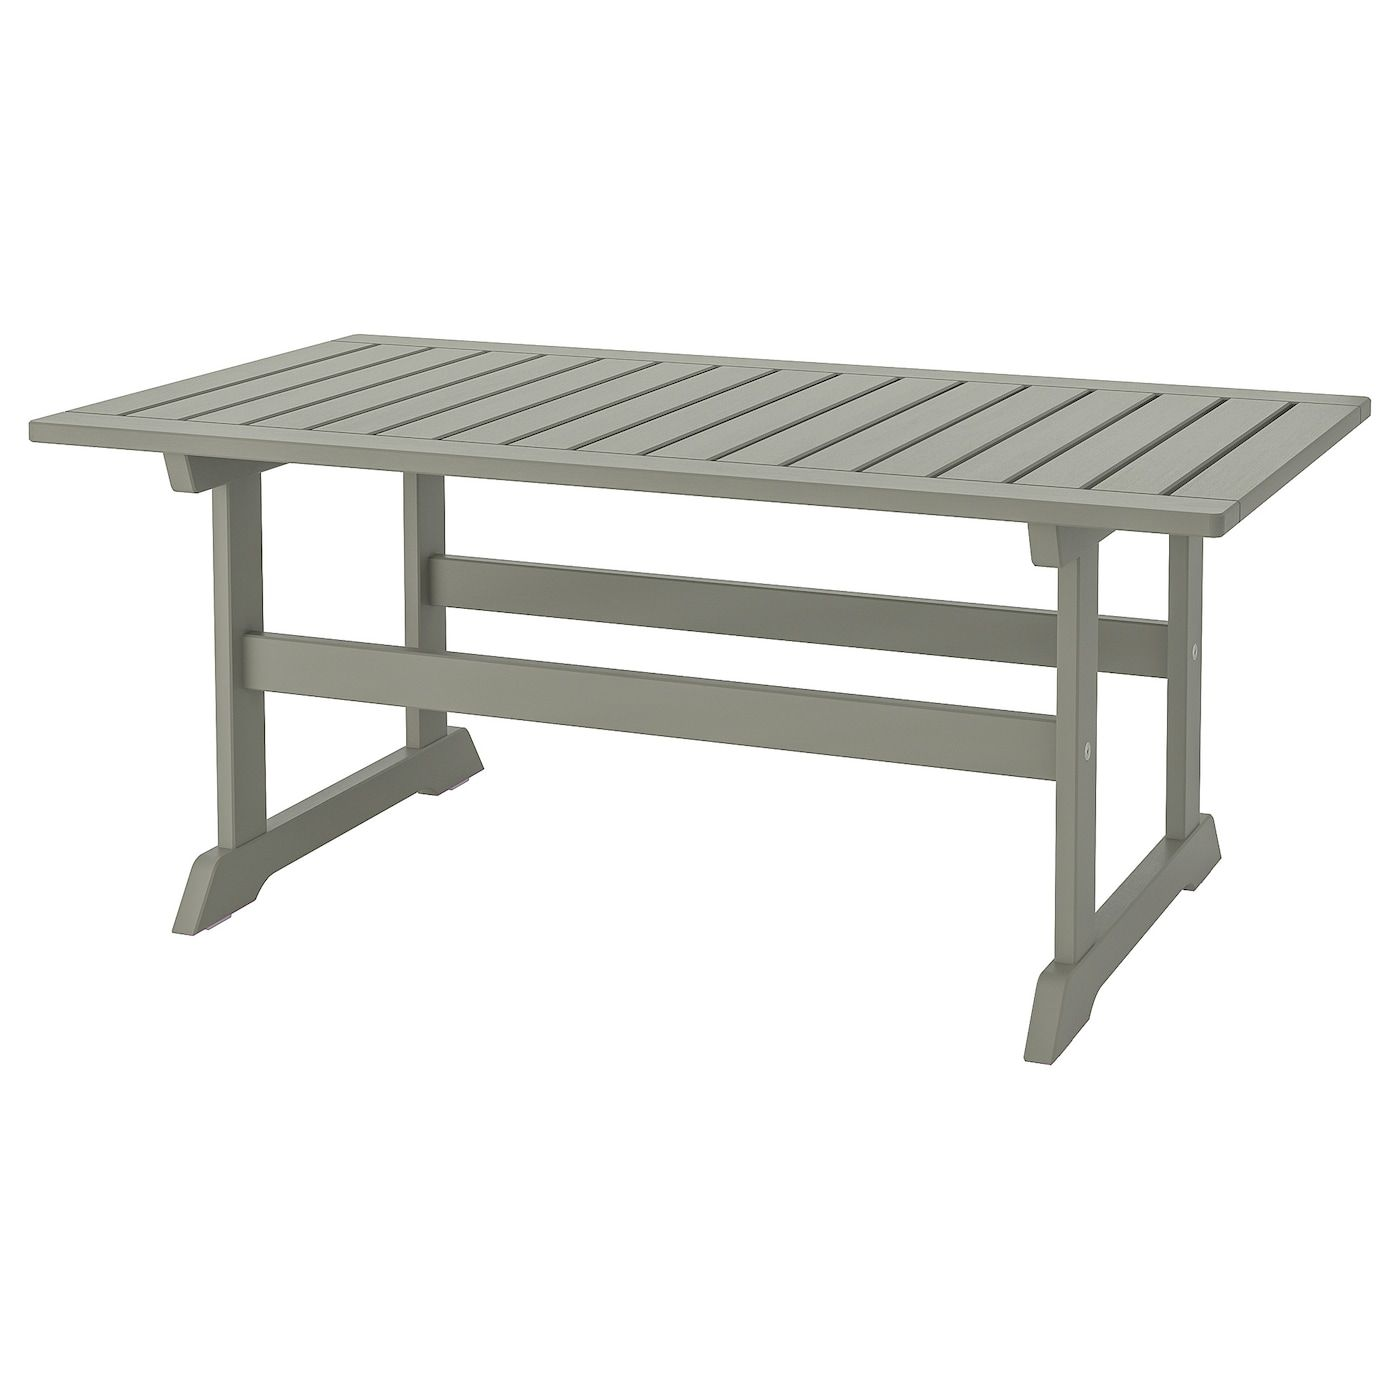 Bondholmen Couchtisch Aussen Grau Las Grau Ikea Osterreich In 2020 Outdoor Lounge Furniture Ikea Grey Stain